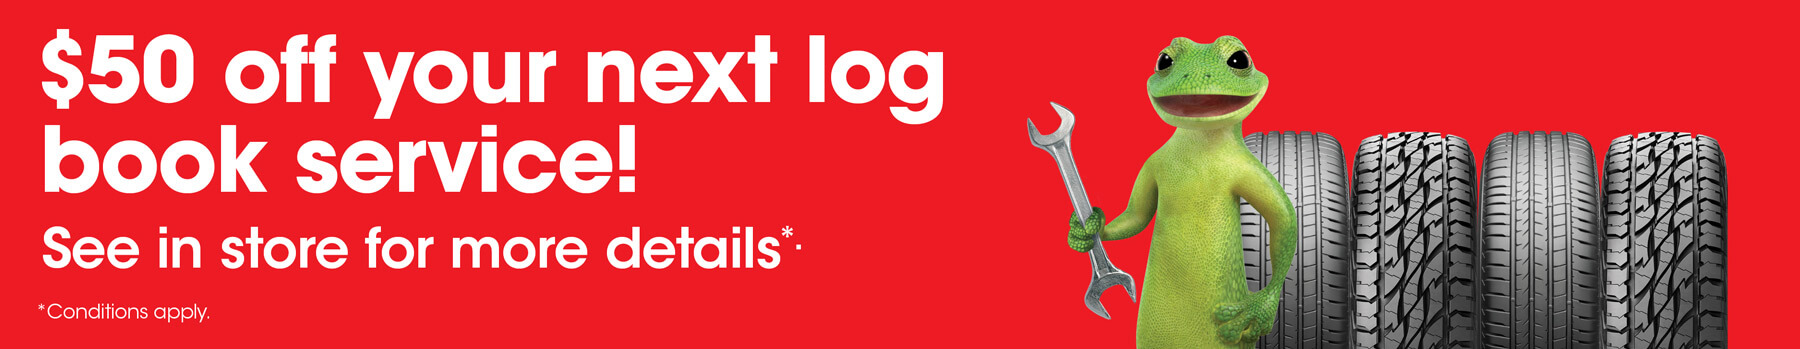 $50 off your next log book service!